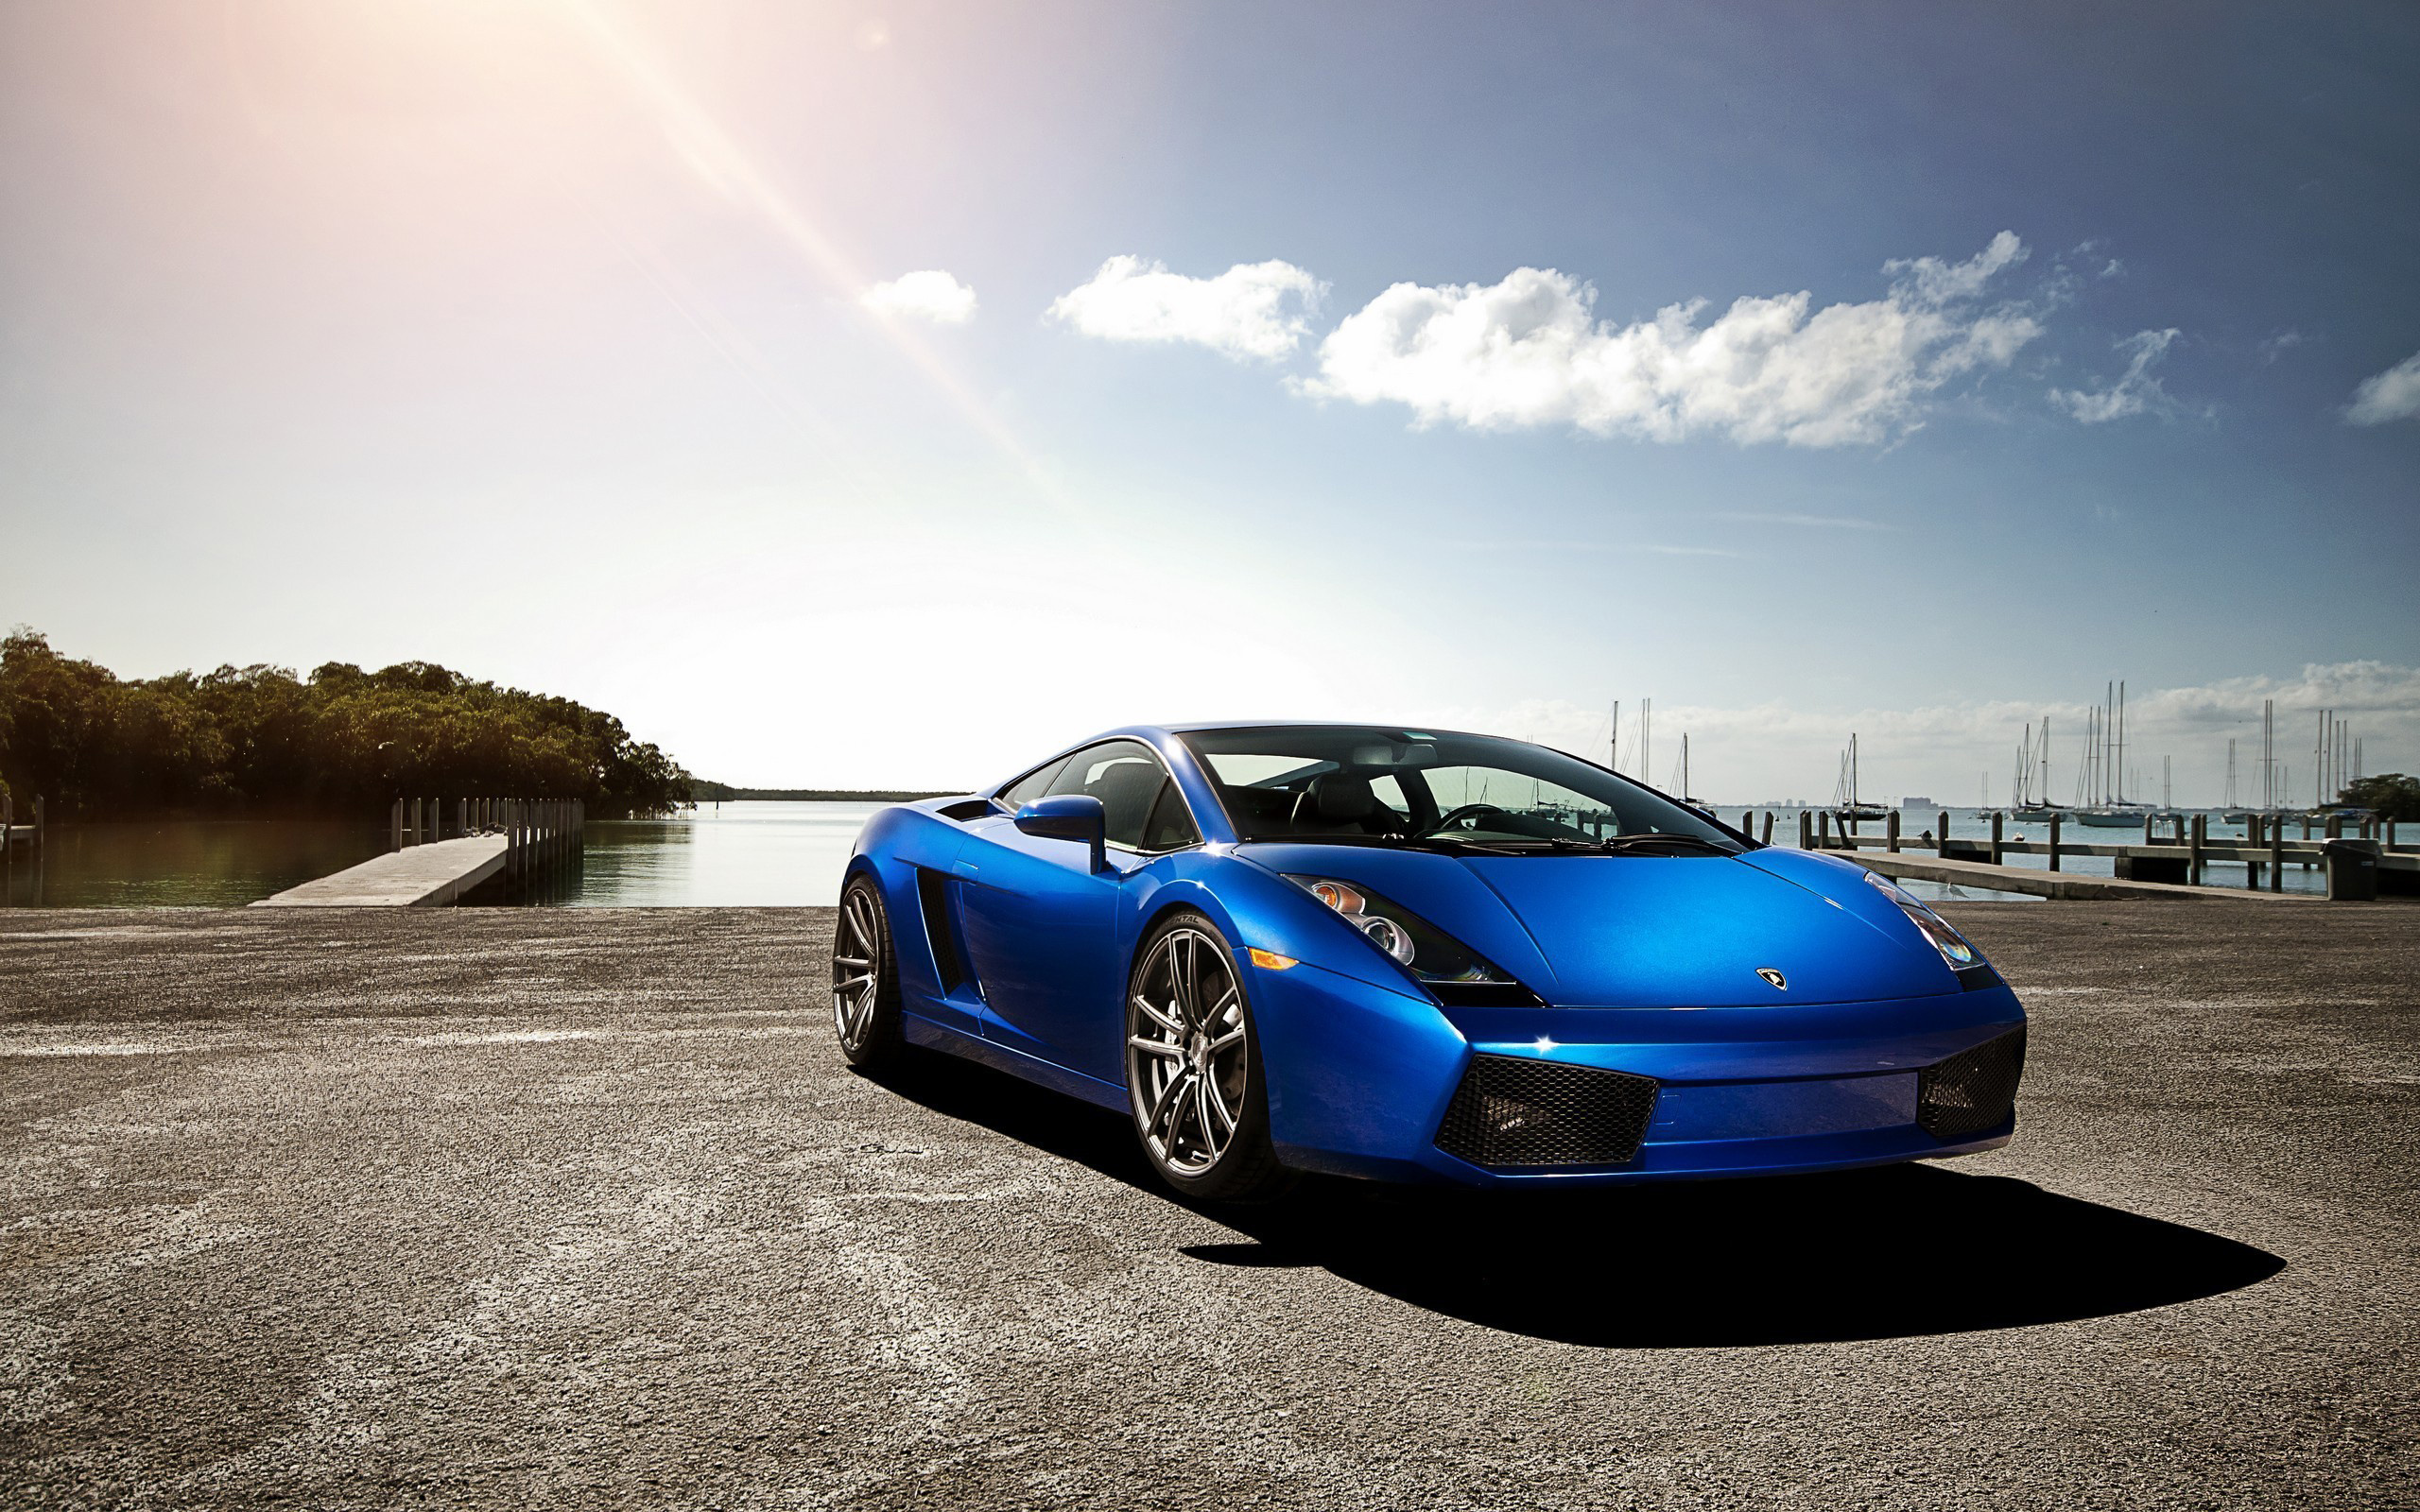 2012 lamborghini gallardo lp560 4 wallpapers hd wallpapers - Lamborghini Gallardo Wallpaper Blue